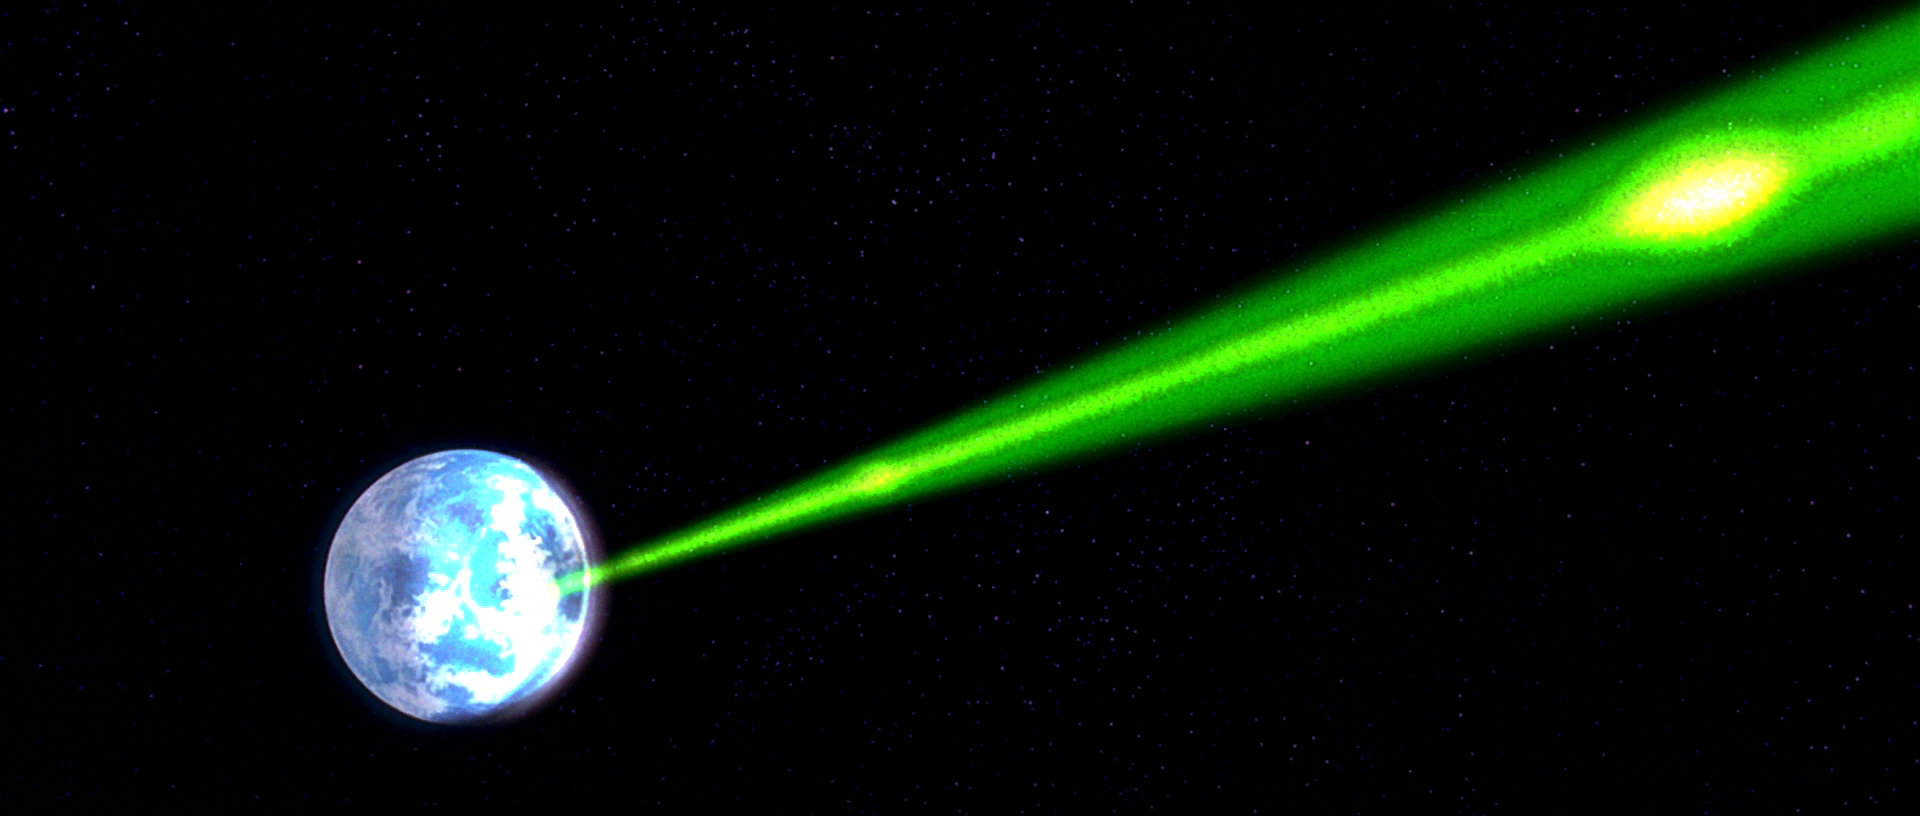 Death Star Destroying Alderaan Star Wars Alderaan Destroyed